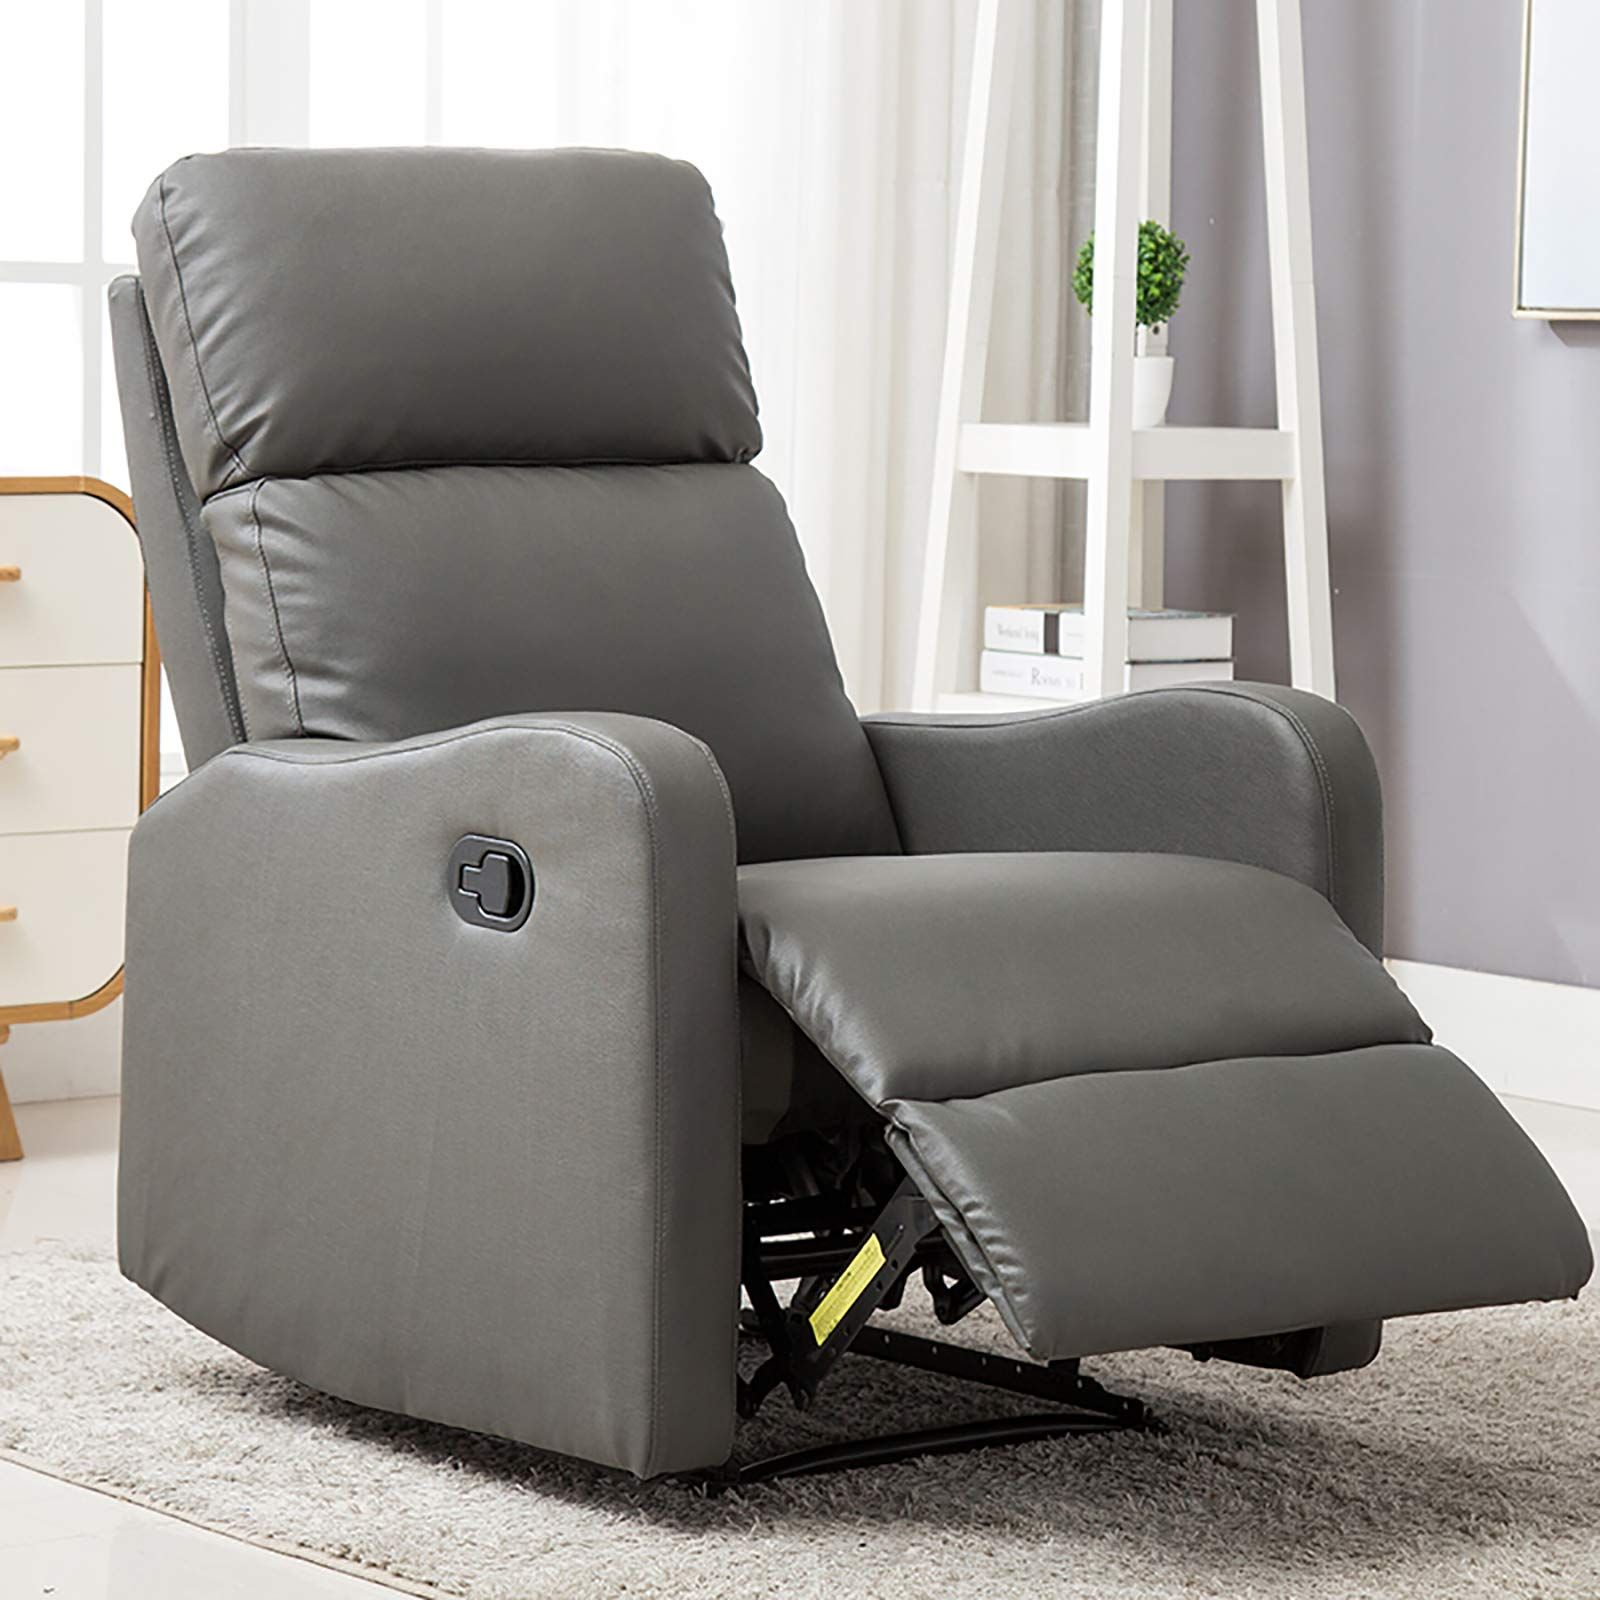 ANJ Chair Contemporary Leather Recliner Chair for Modern